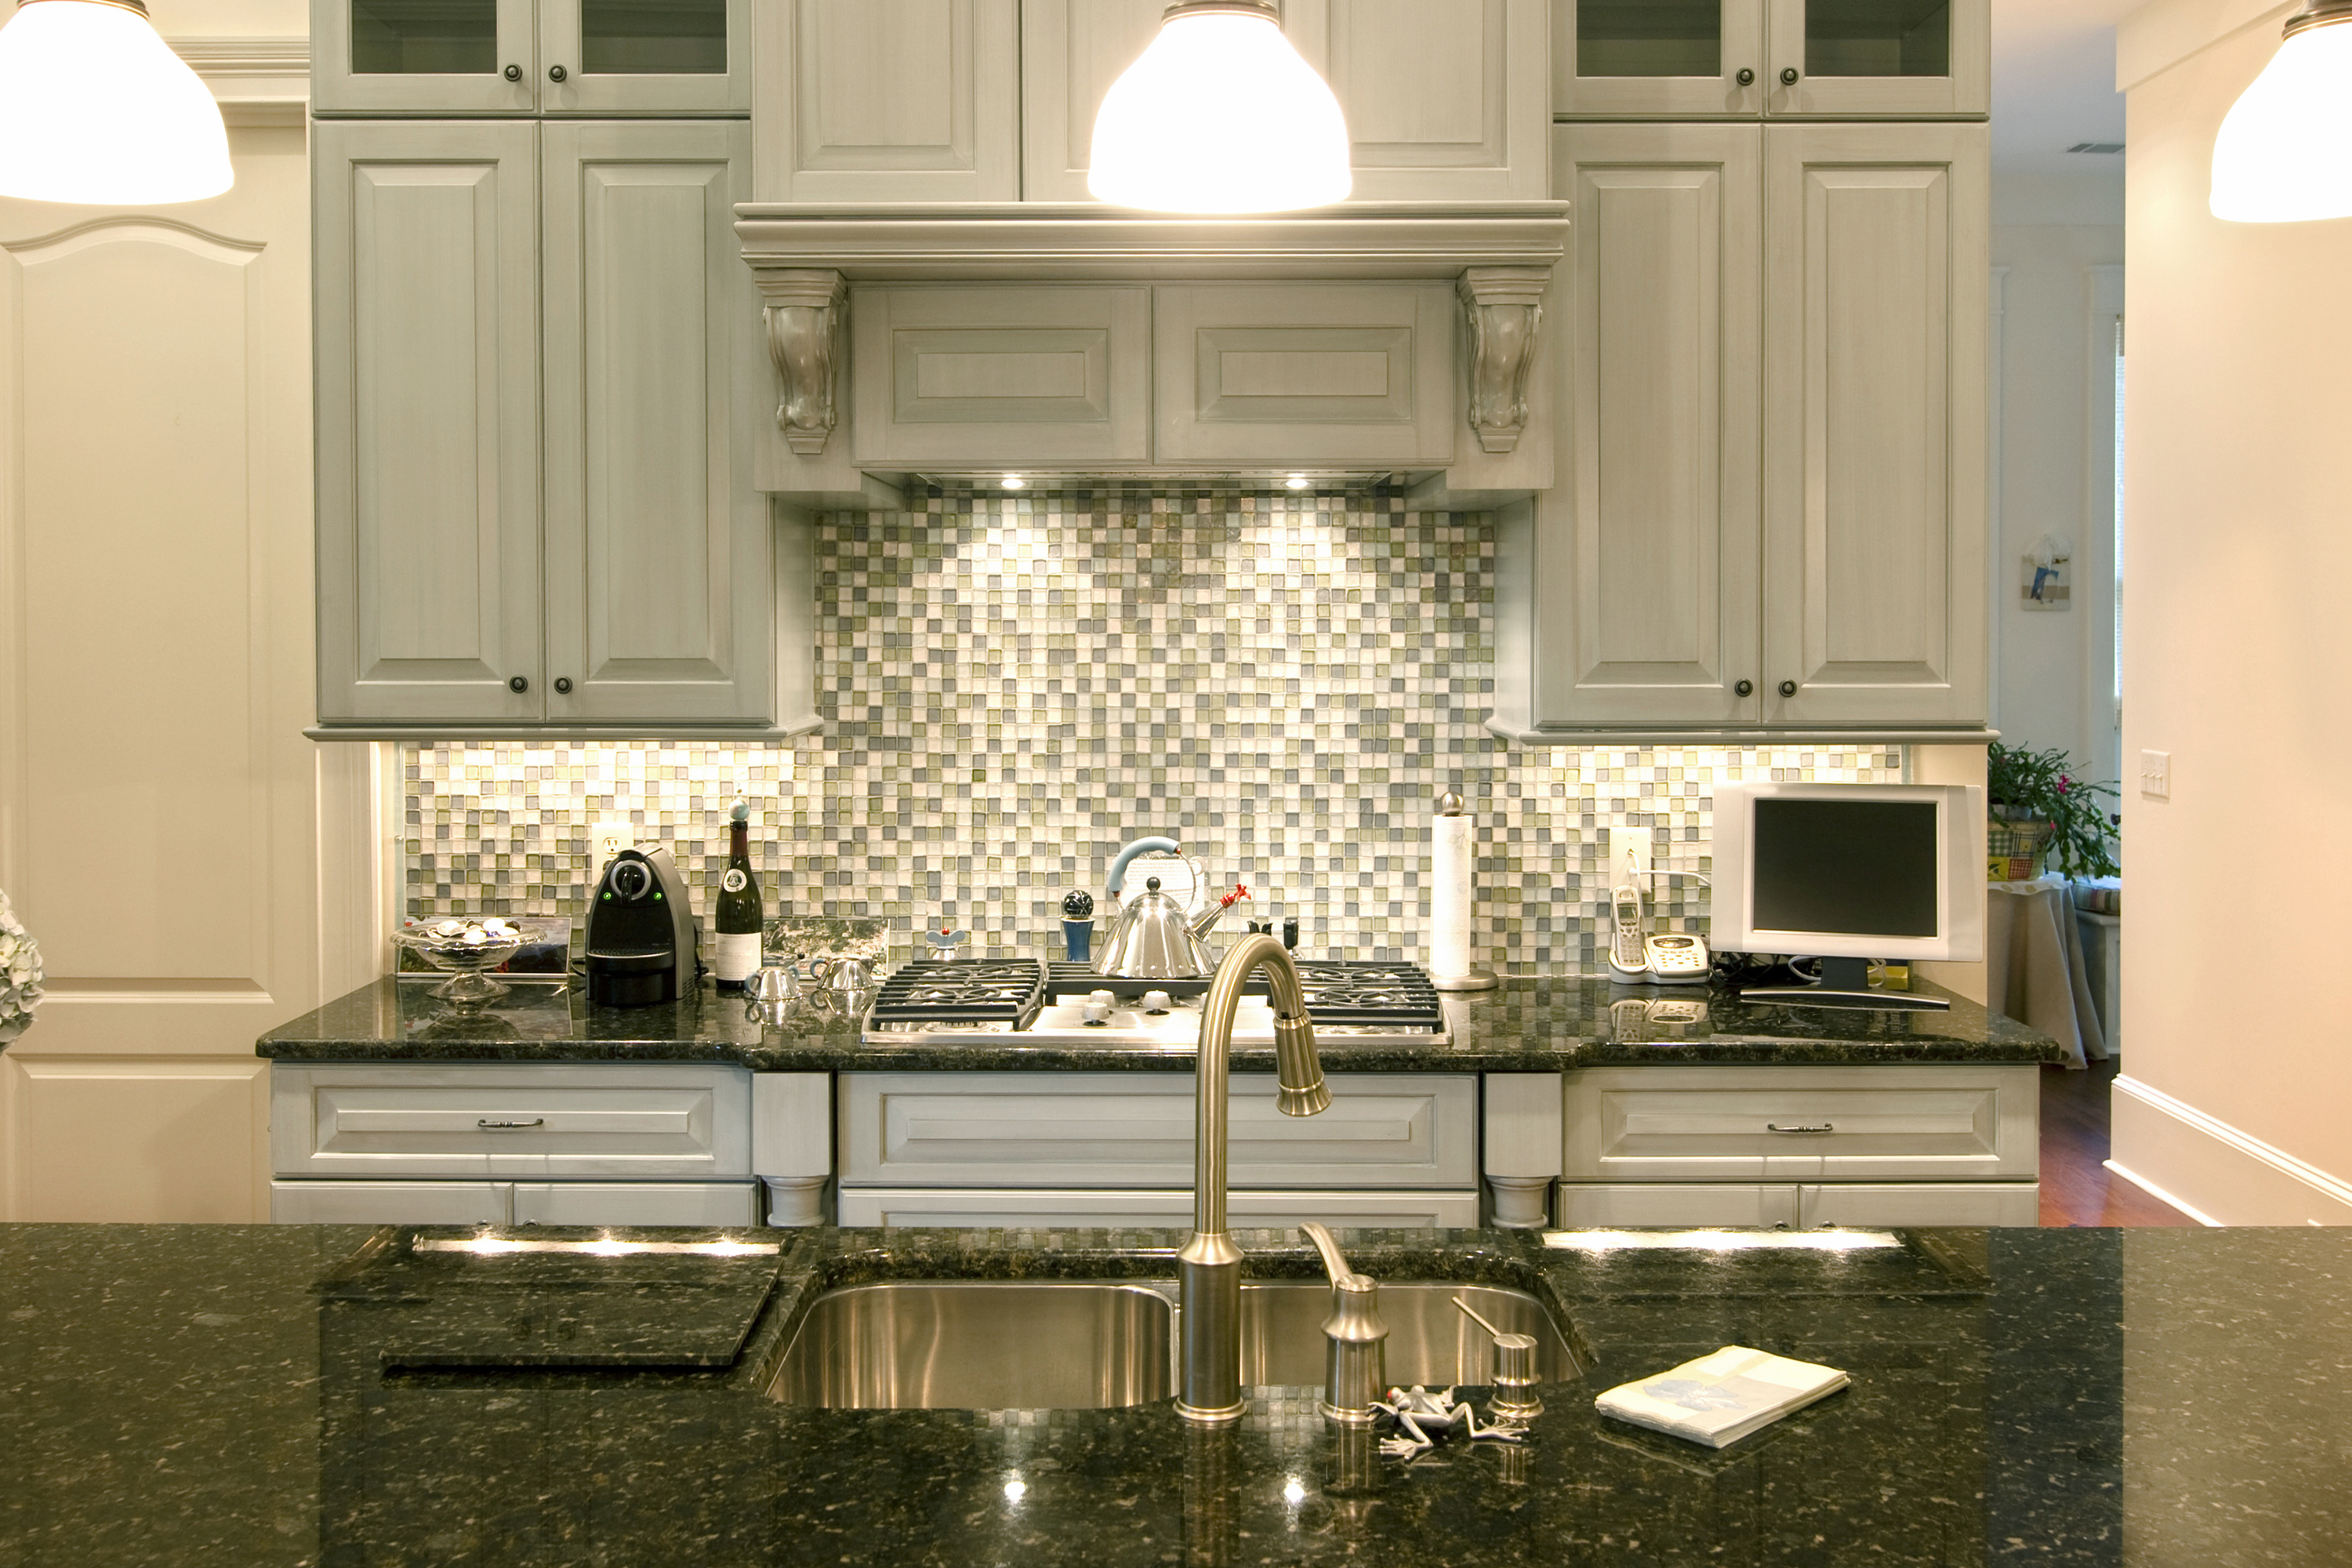 The best backsplash ideas for black granite countertops home and cabinet reviews - Kitchen backsplash ideas pictures ...